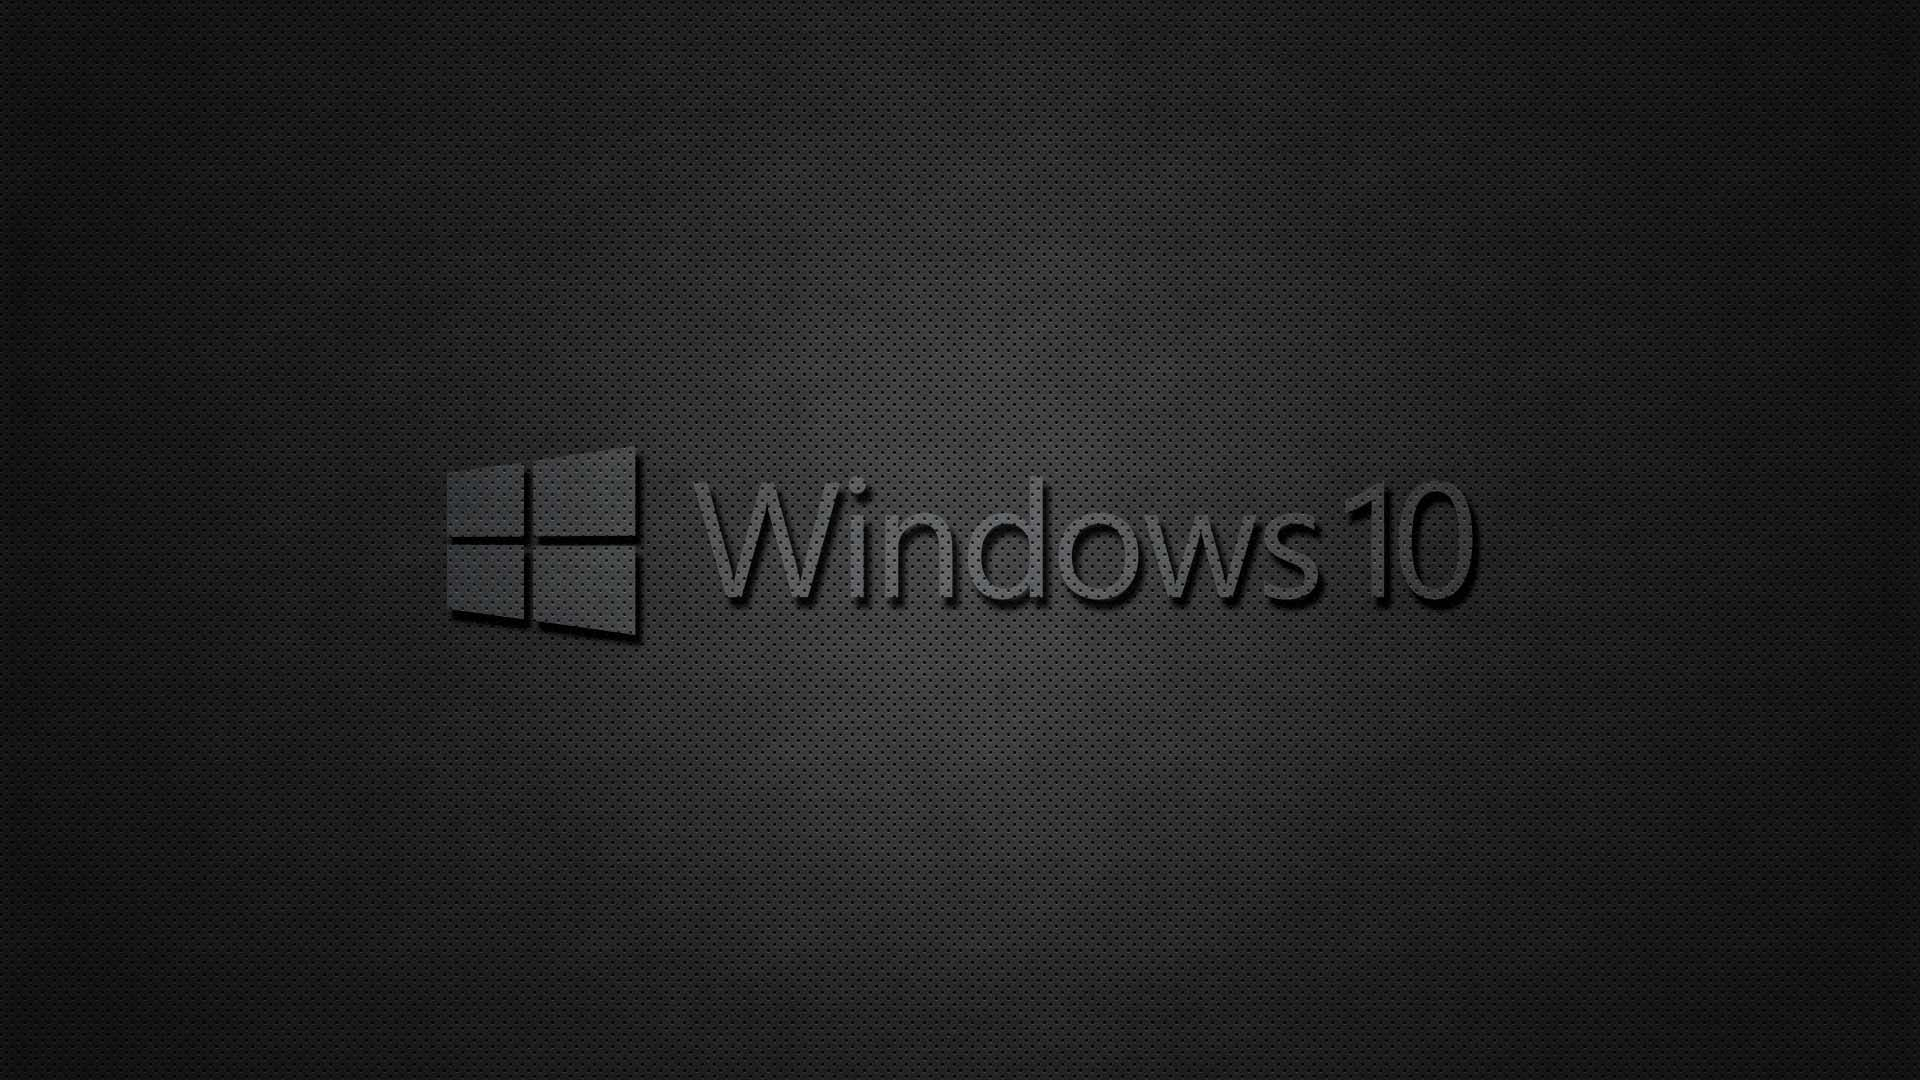 Dark windows 10 wallpaper